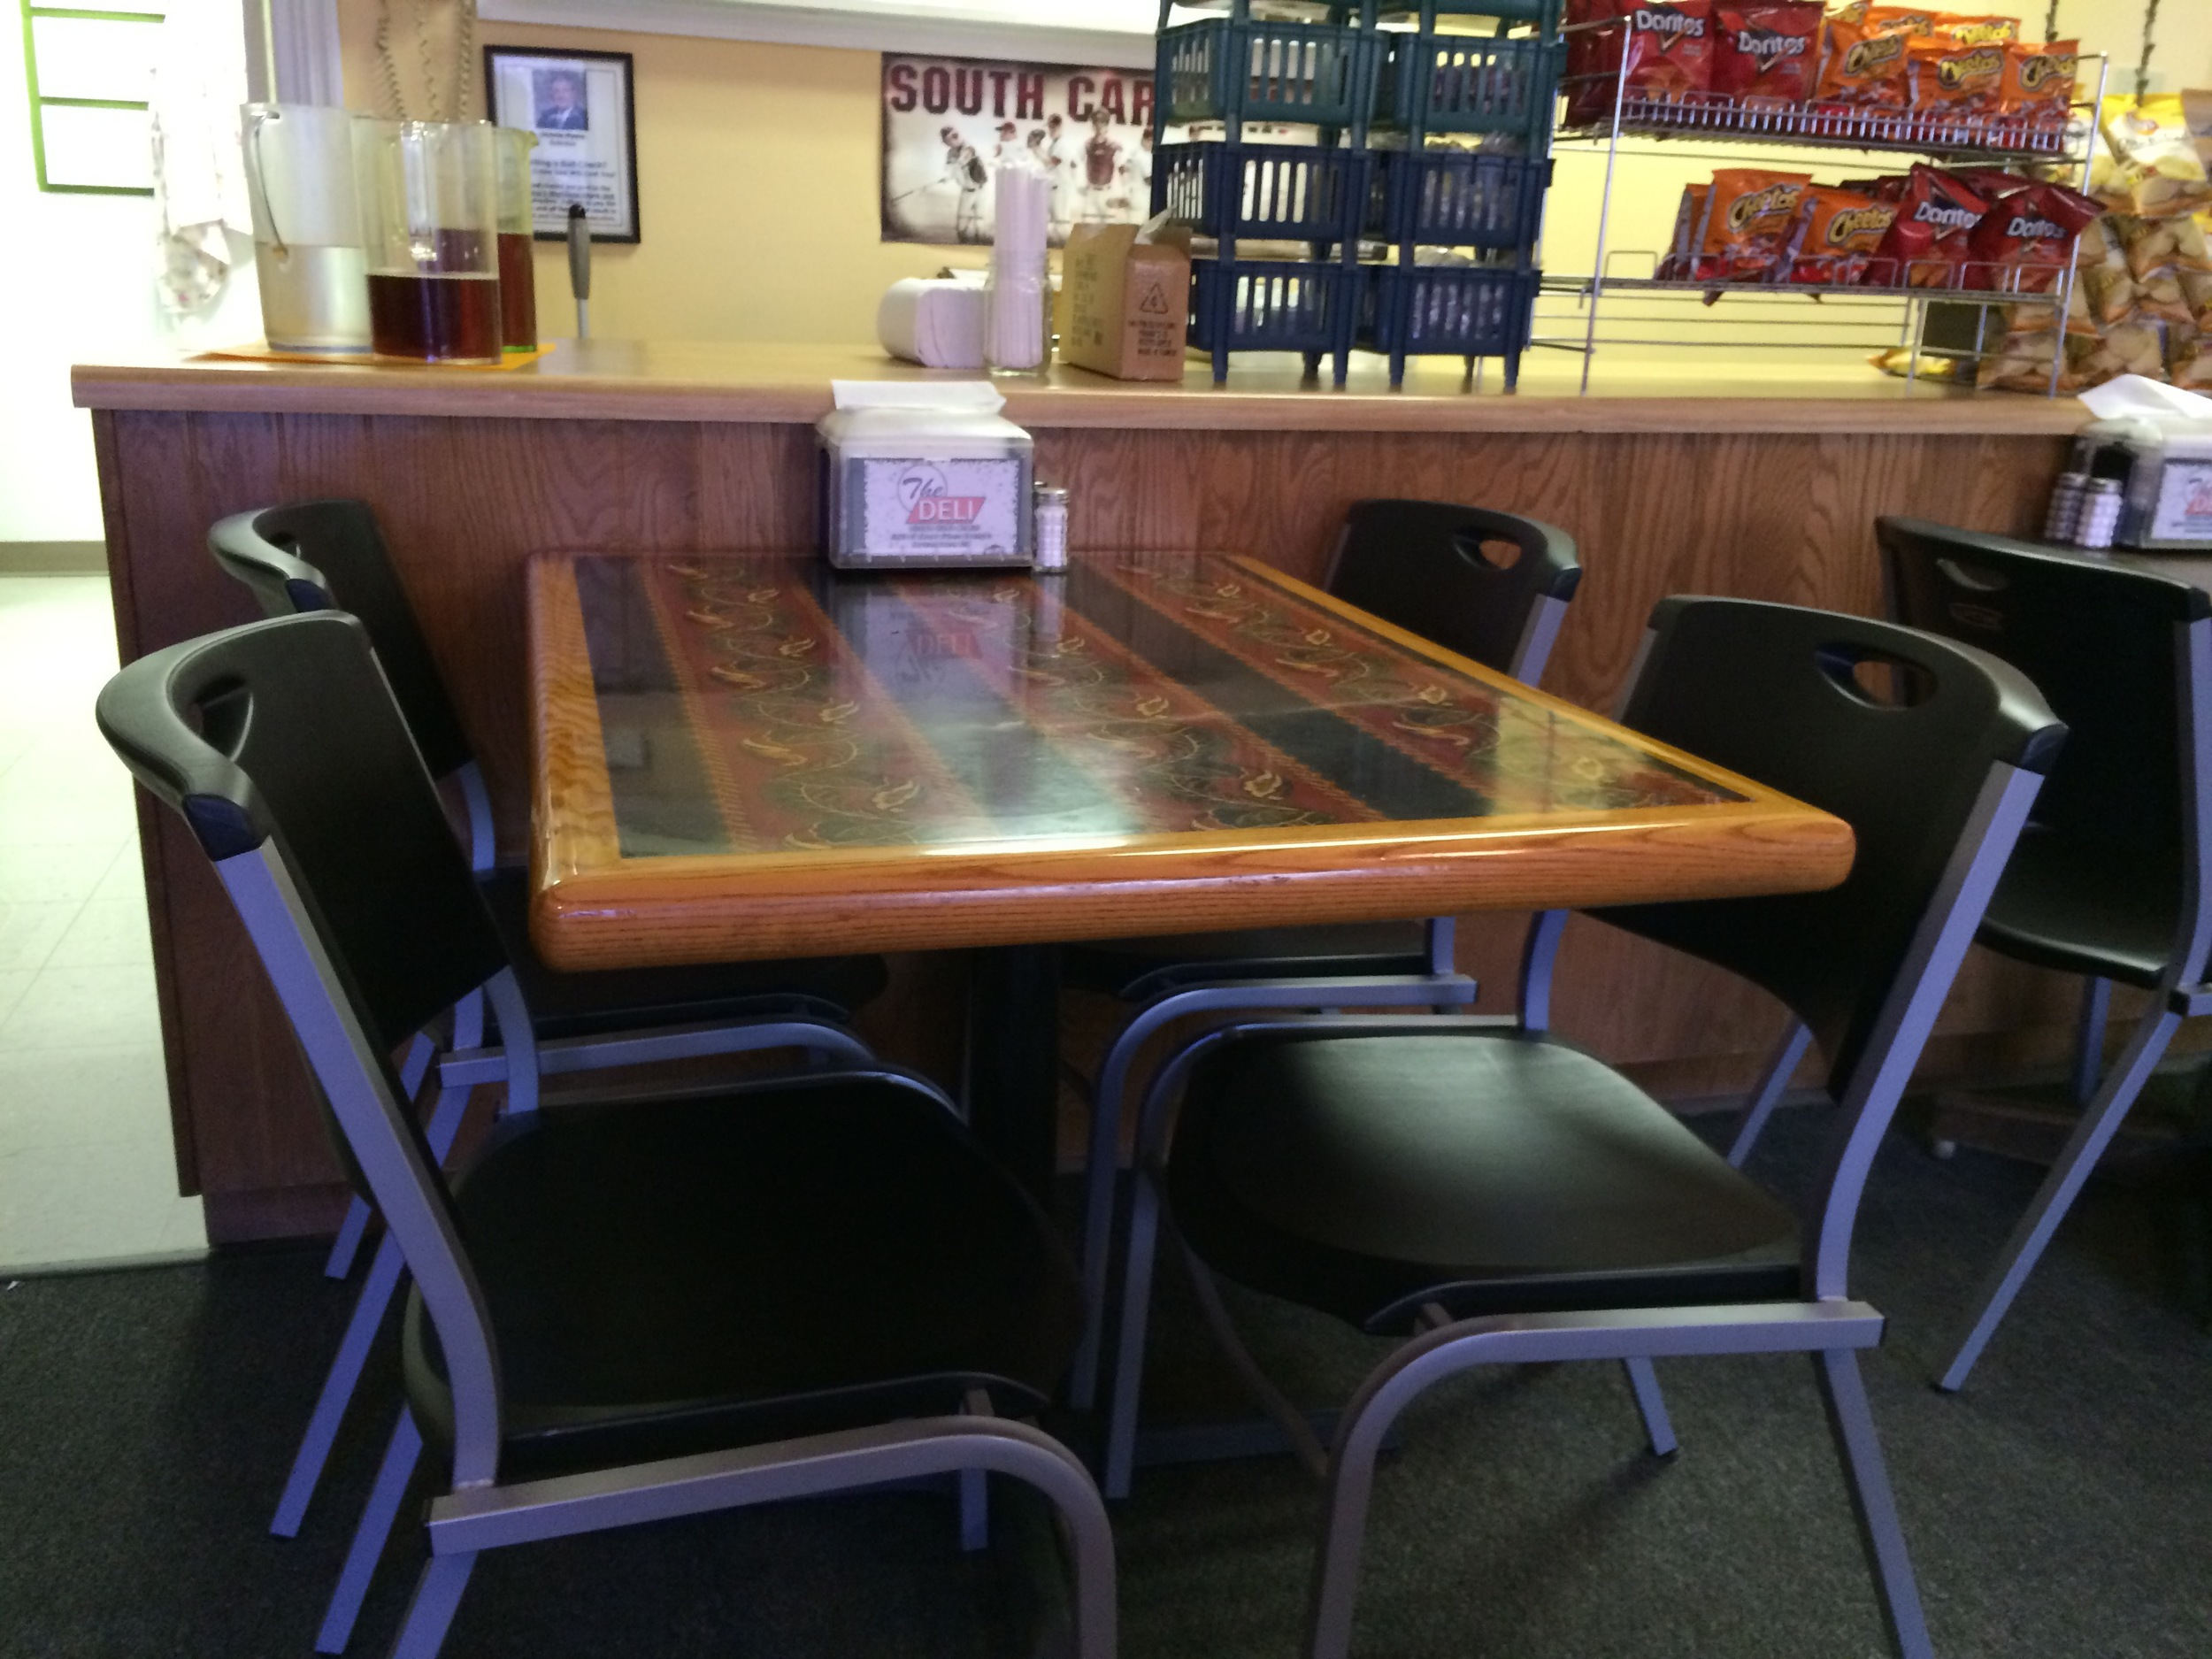 We have a table waiting for you!